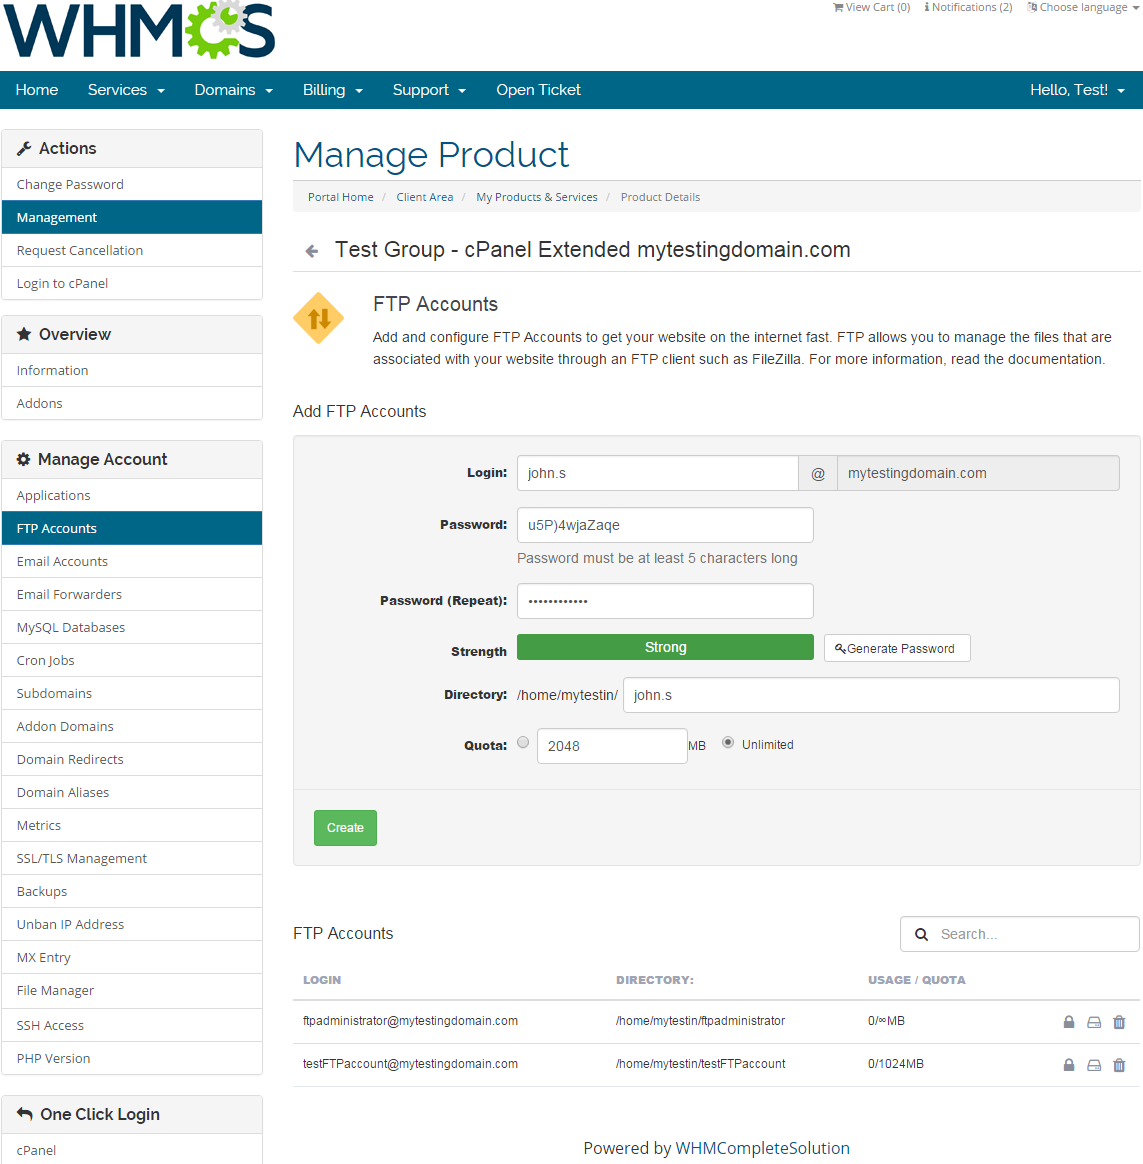 cPanel Extended For WHMCS: Screen 2